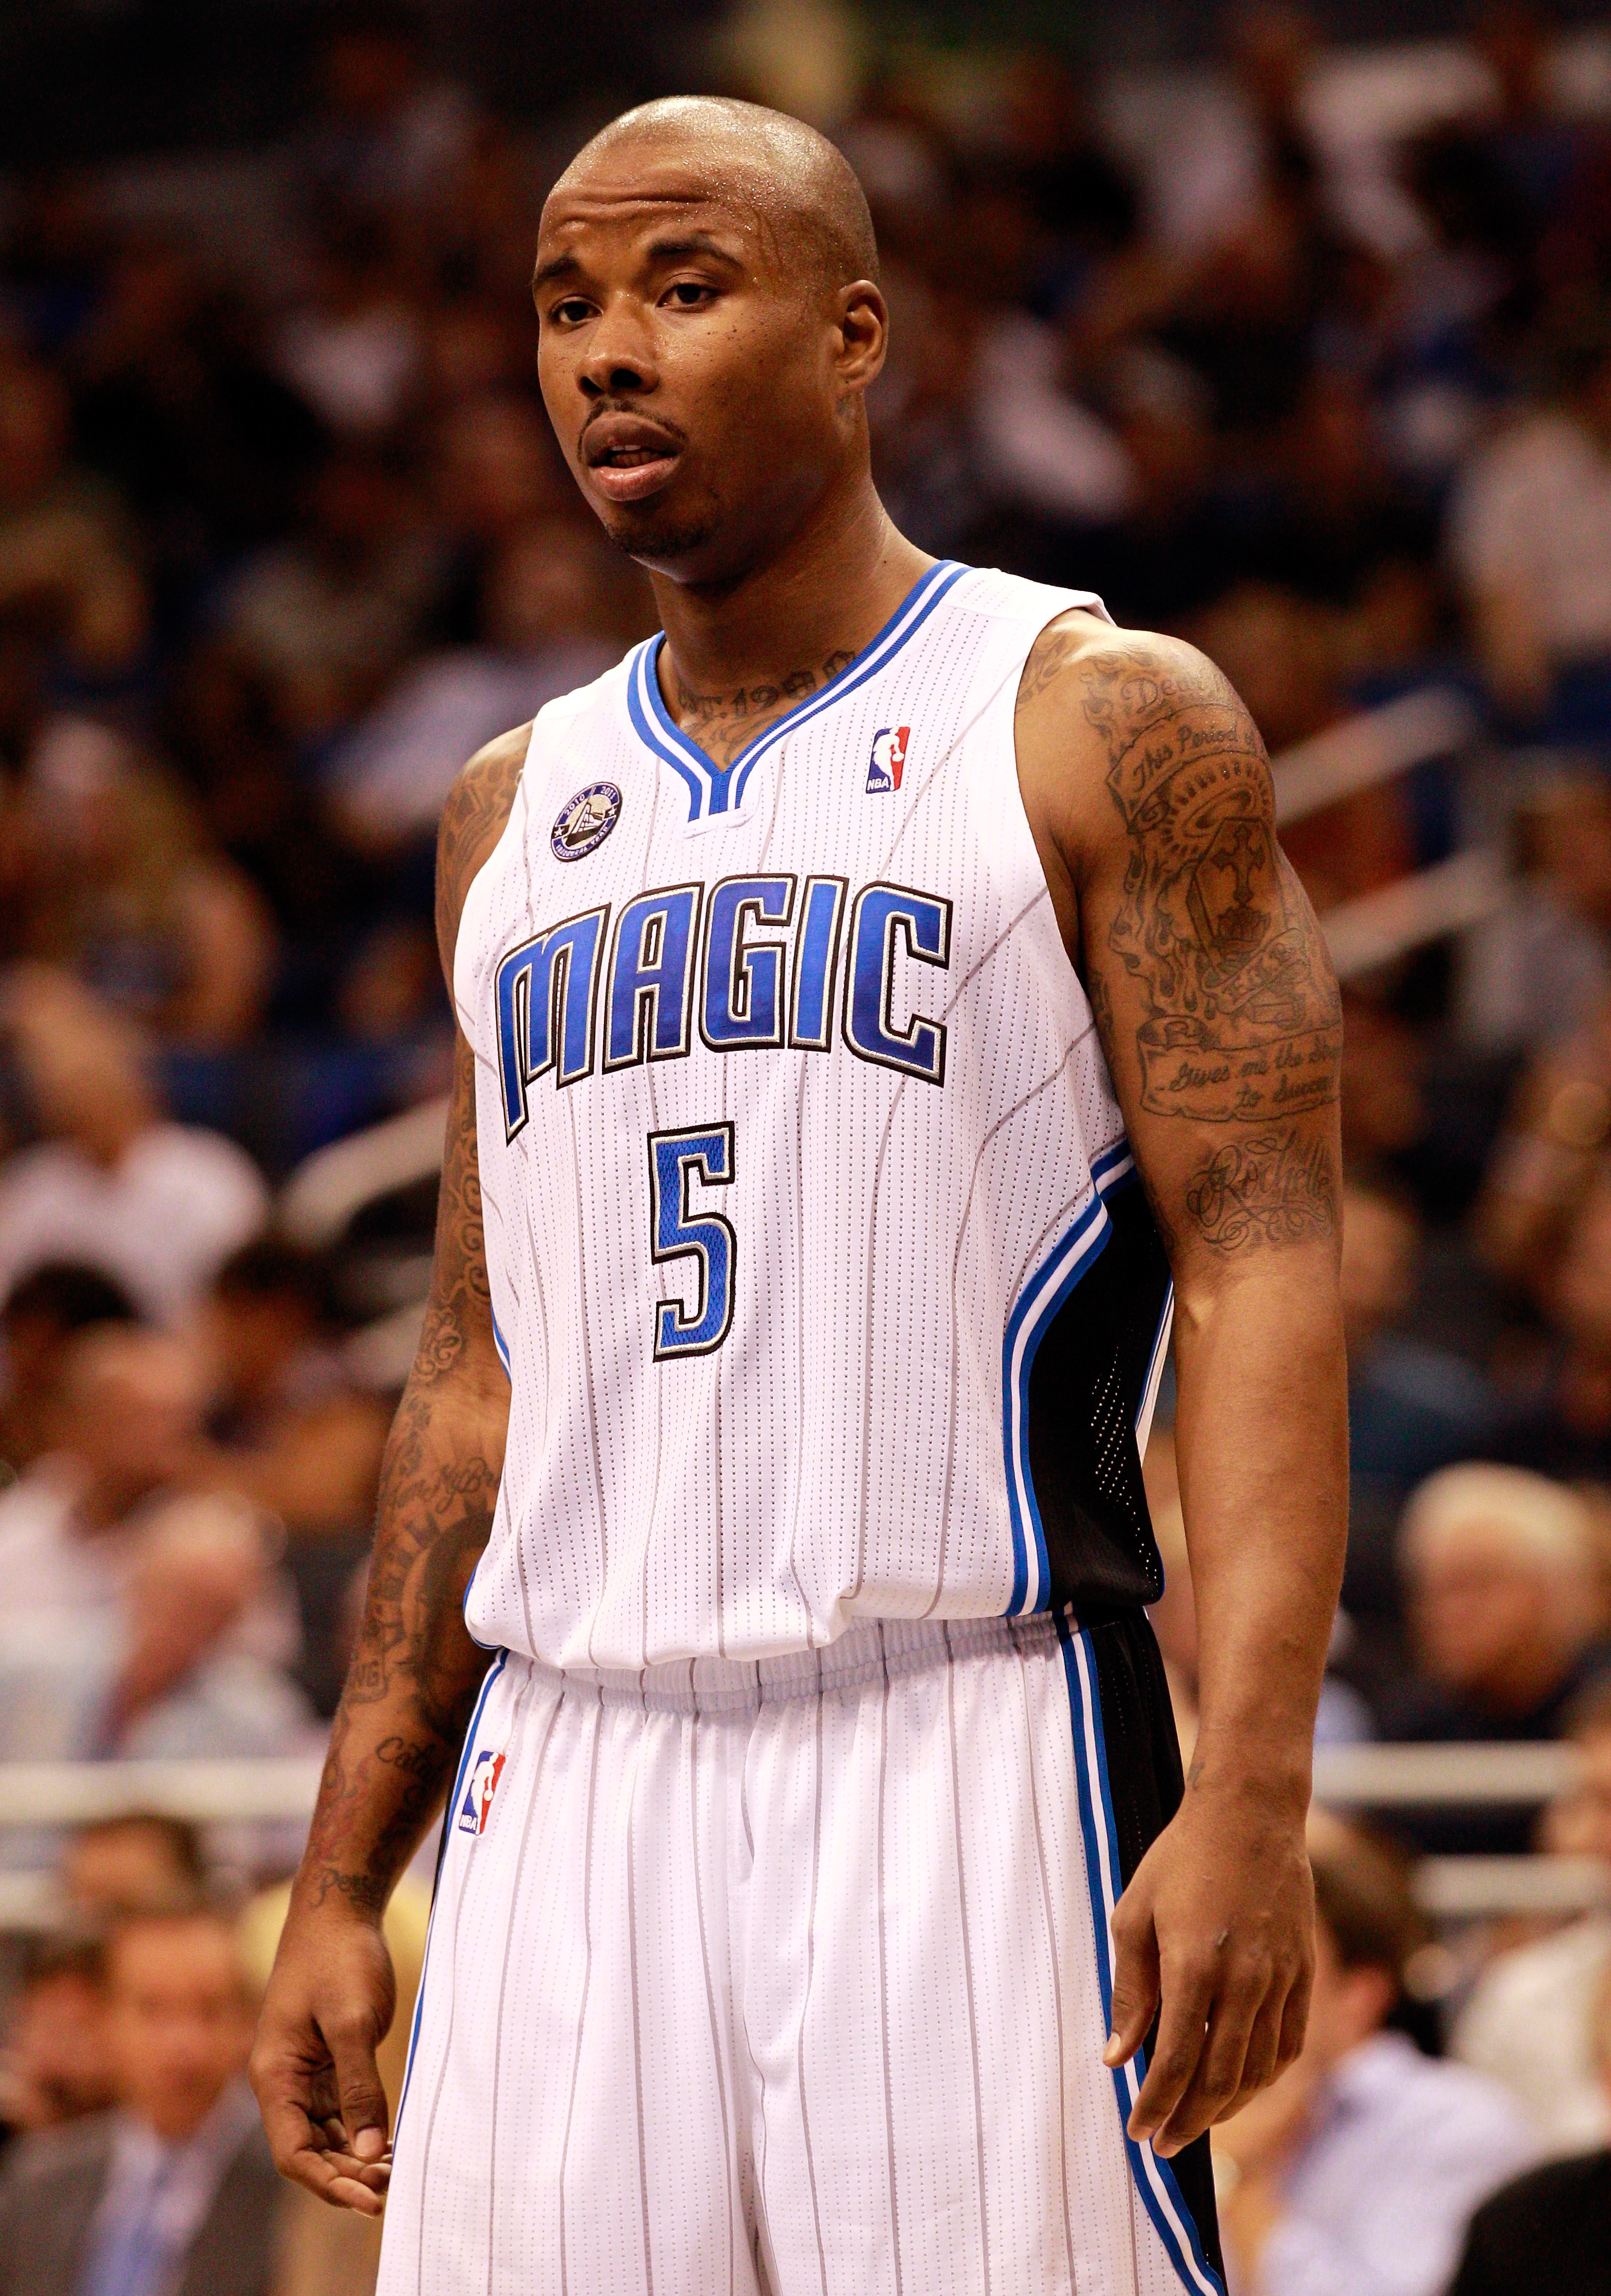 ORLANDO, FL - OCTOBER 10:  Quentin Richardson #5 of the Orlando Magic waits to enter the game against the New Orleans Hornets at Amway Arena on October 10, 2010 in Orlando, Florida. NOTE TO USER: User expressly acknowledges and agrees that, by downloading